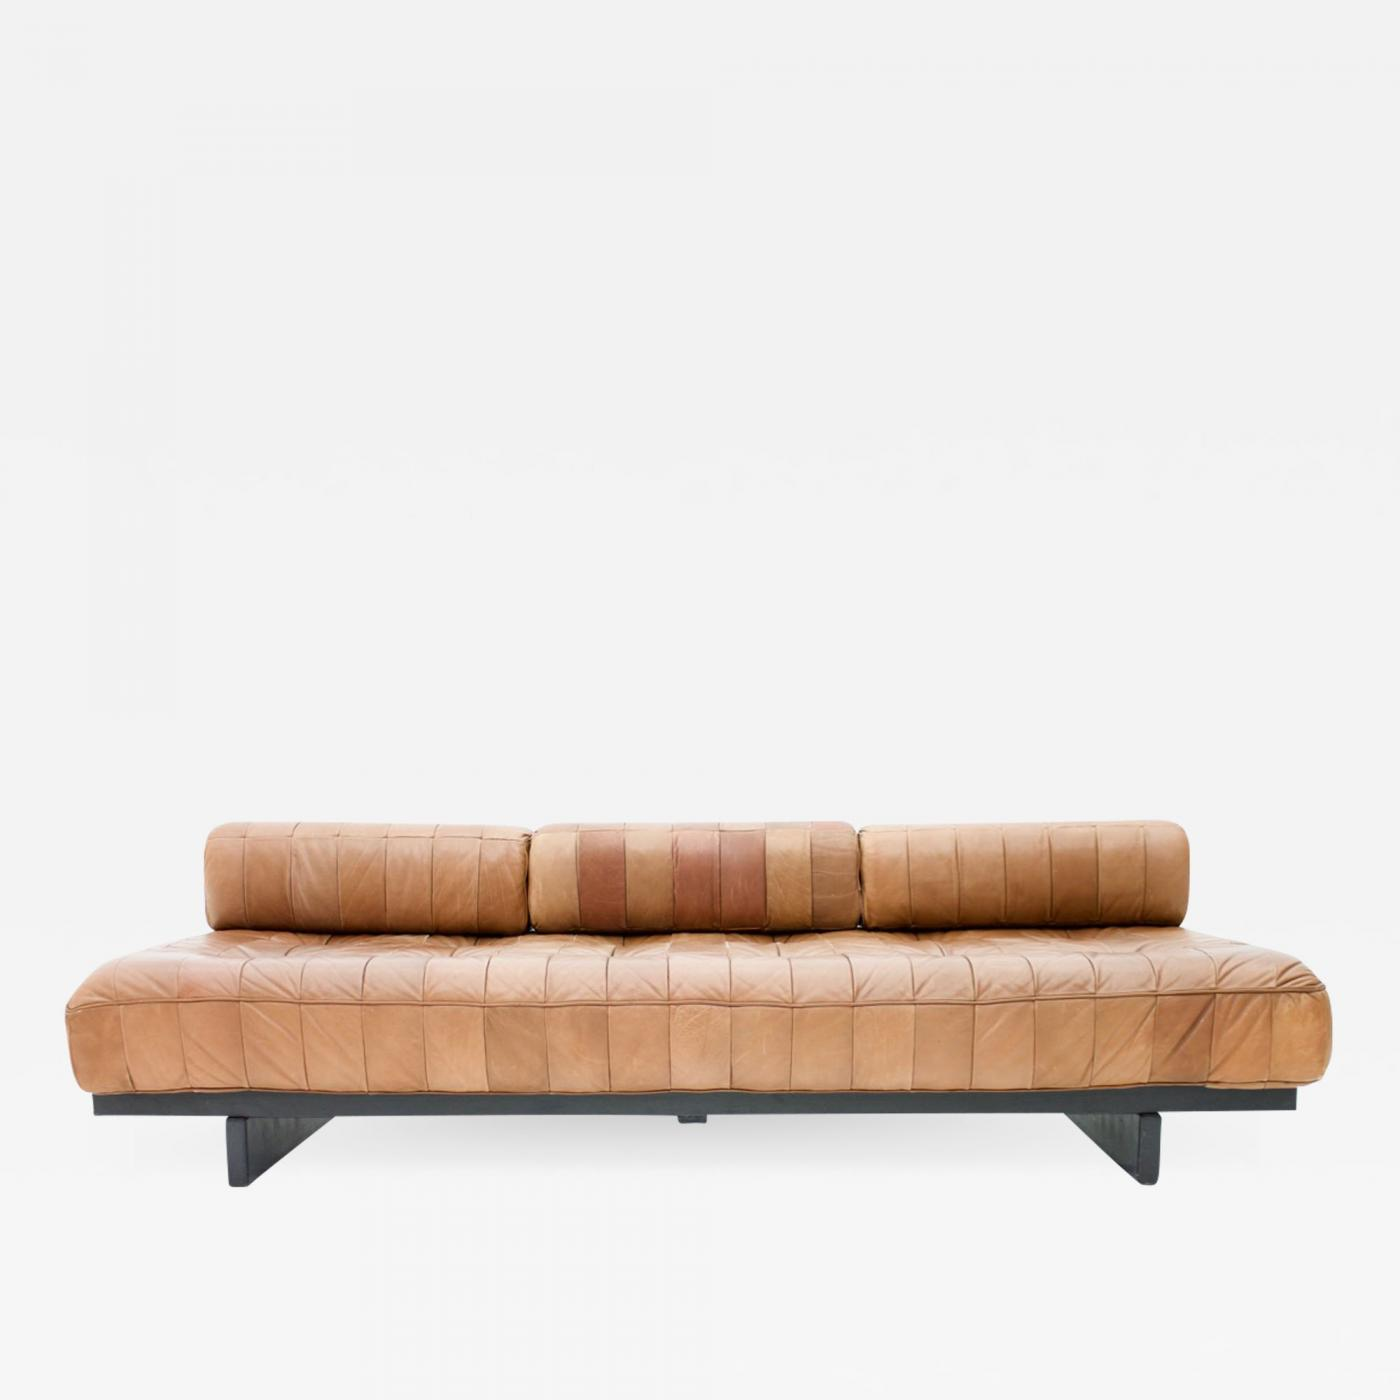 Full Size of De Sede Sessel Gebraucht Schweiz Sofa Ds 47 Preise Couch Furniture Uk Endless 600 By For Sale Patchwork Leather Daybed 80 Bed Schlafzimmer Kommode Weiß Sofa De Sede Sofa